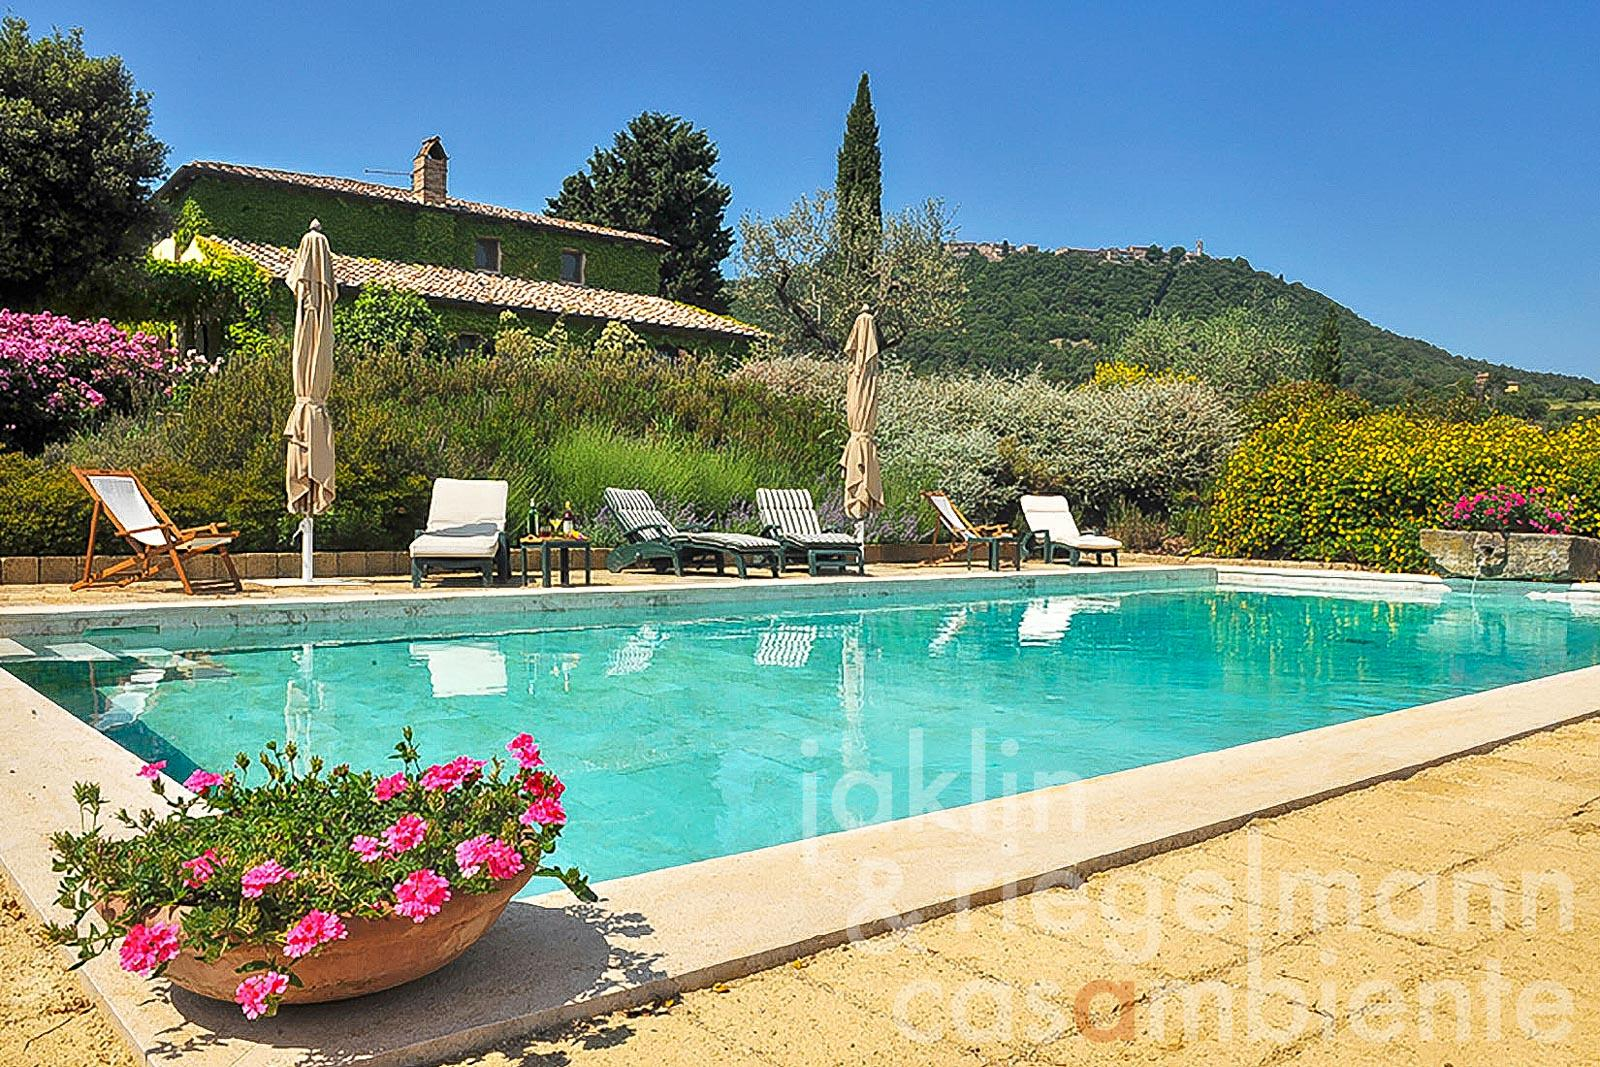 Enchanting country house with dependence, garage and pool near Pienza in Tuscany